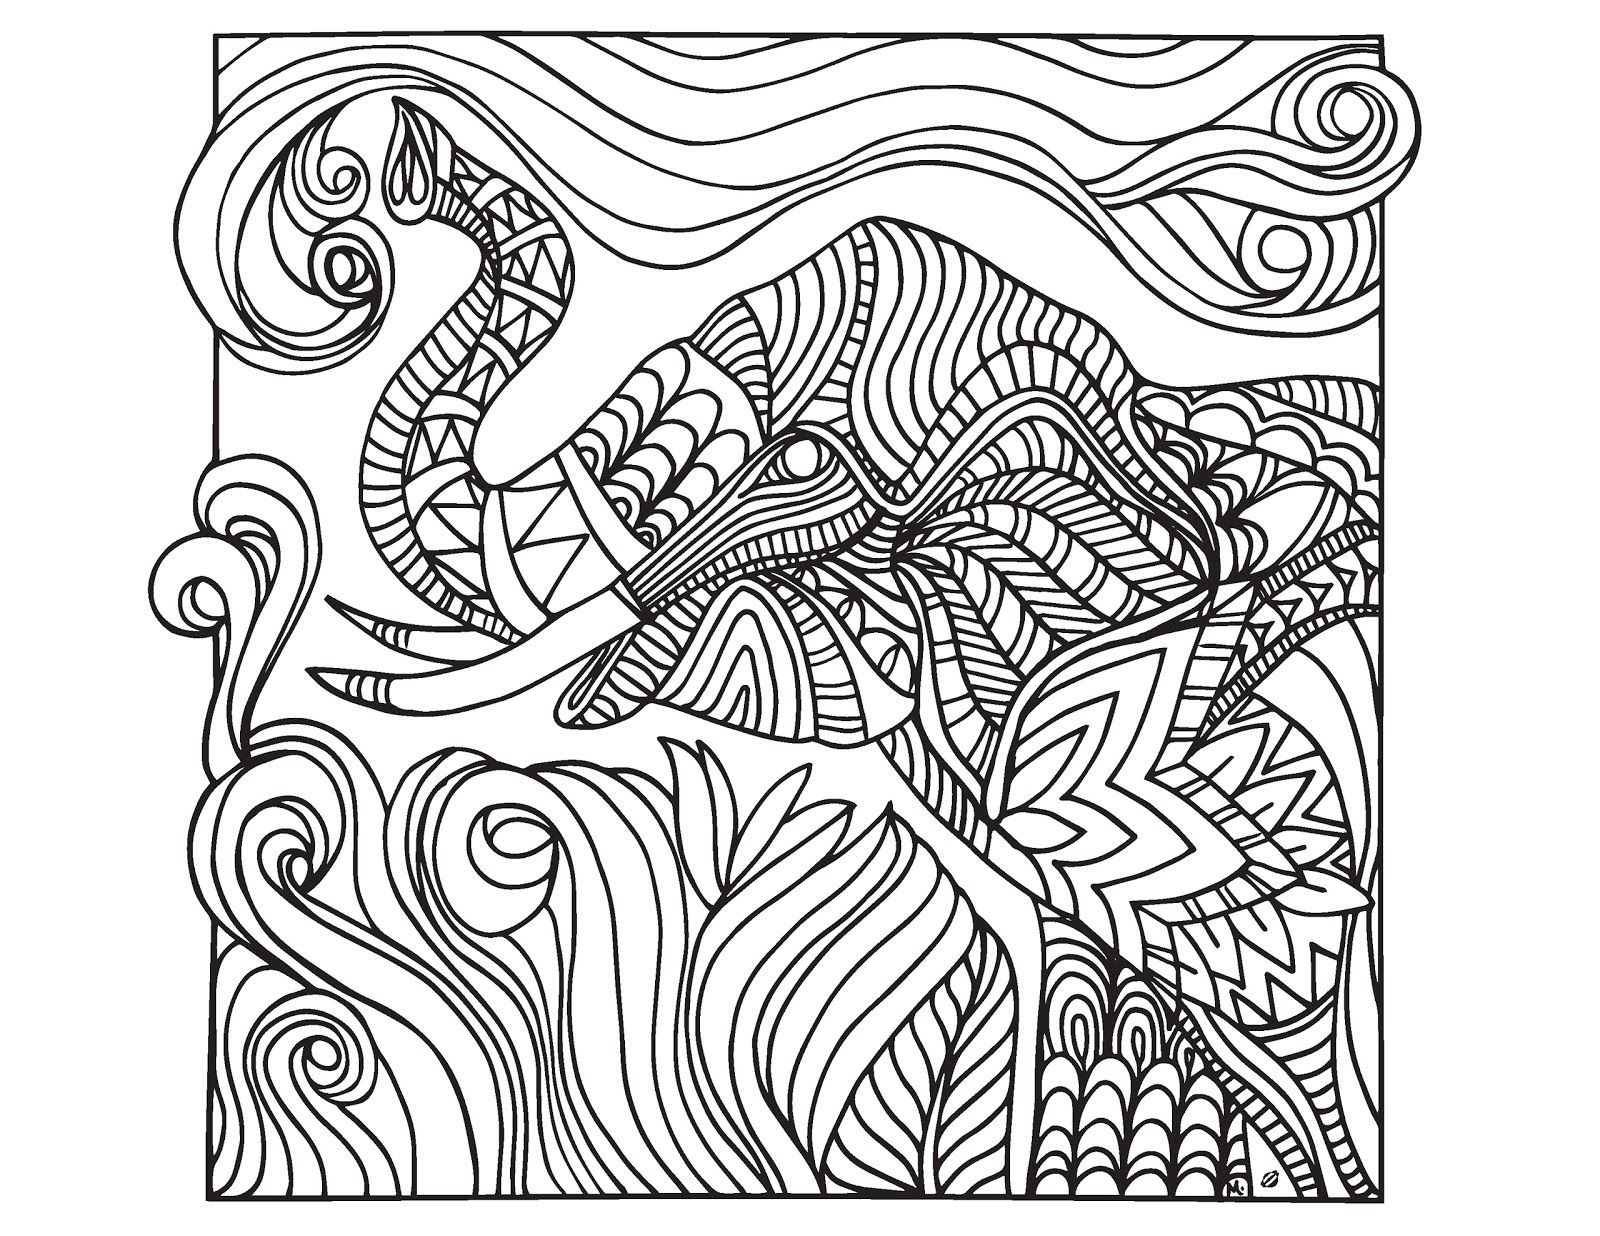 Elephant Colouring Sheet - (lostbumblebee.blogspot) | Outside the ...